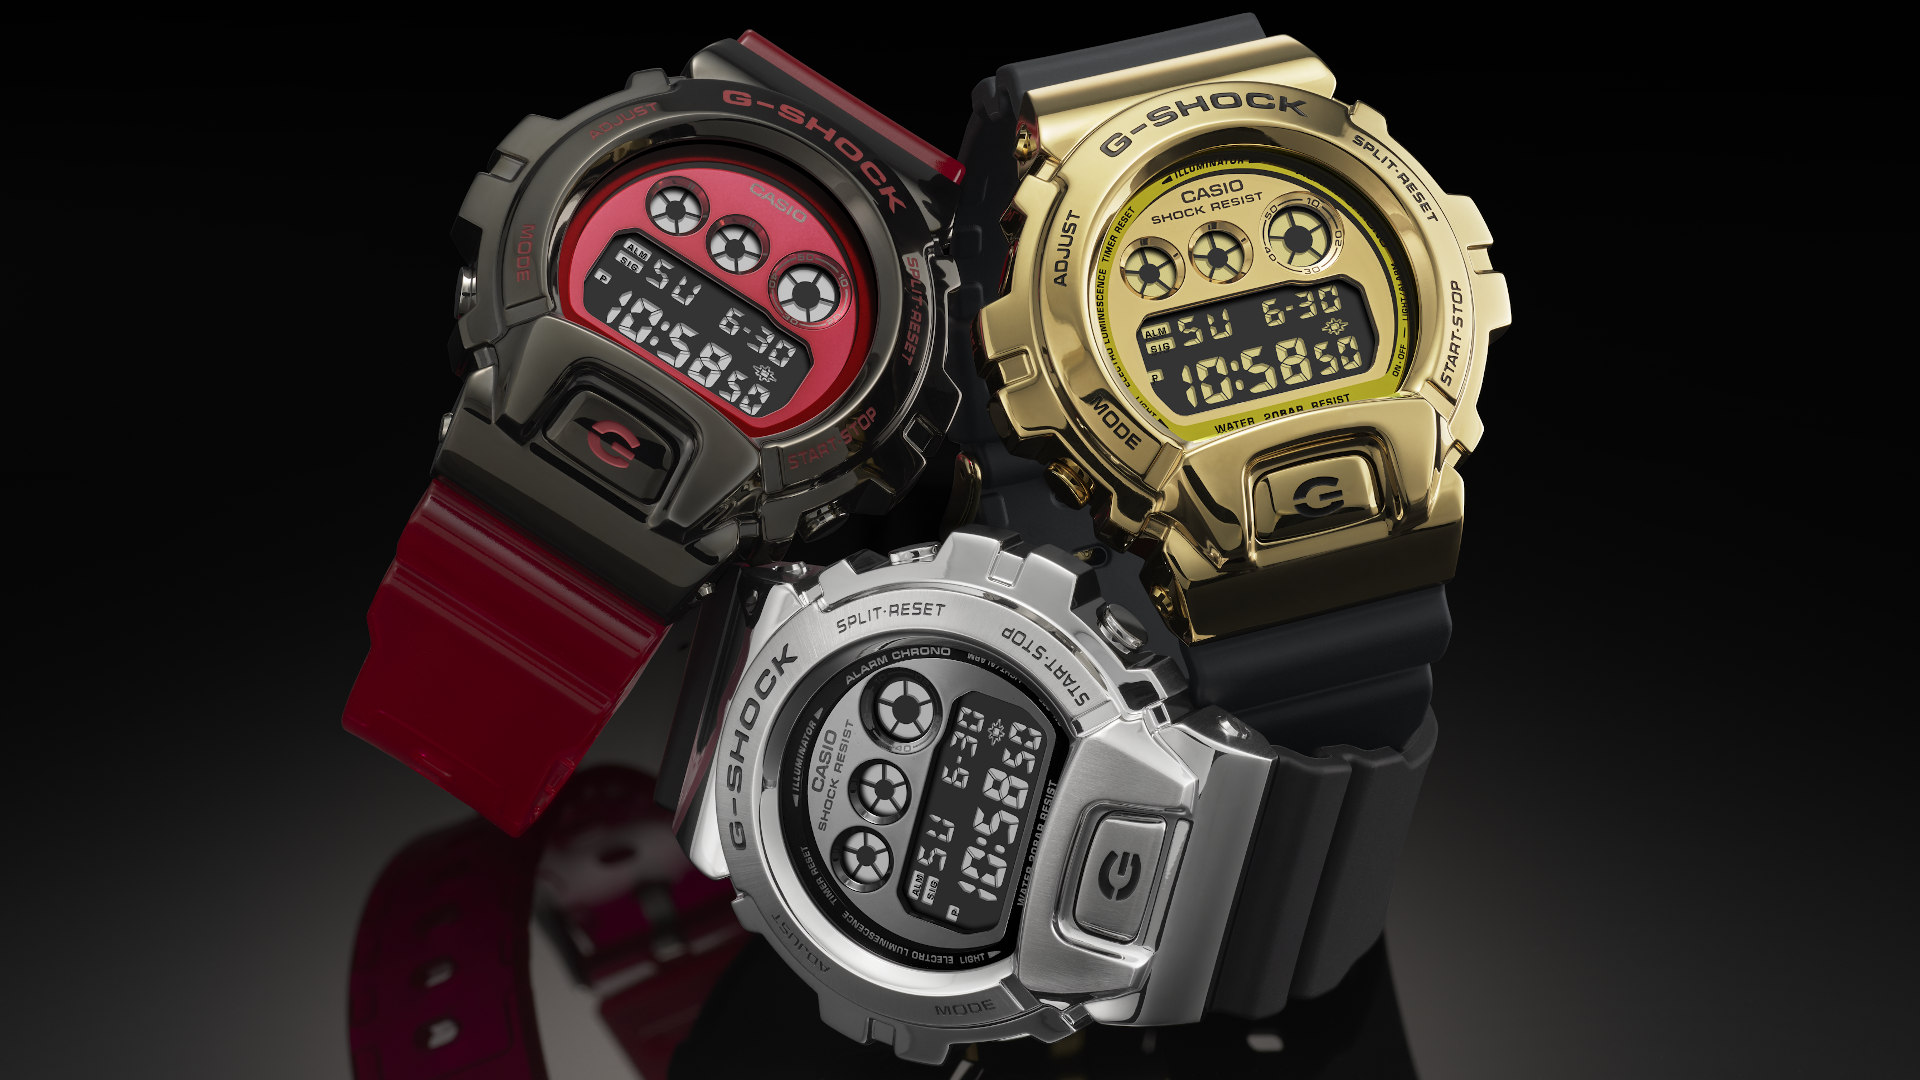 Casio G-Shock DW-6900 celebrates its 25th anniversary with stainless steel bezels and special edition colours